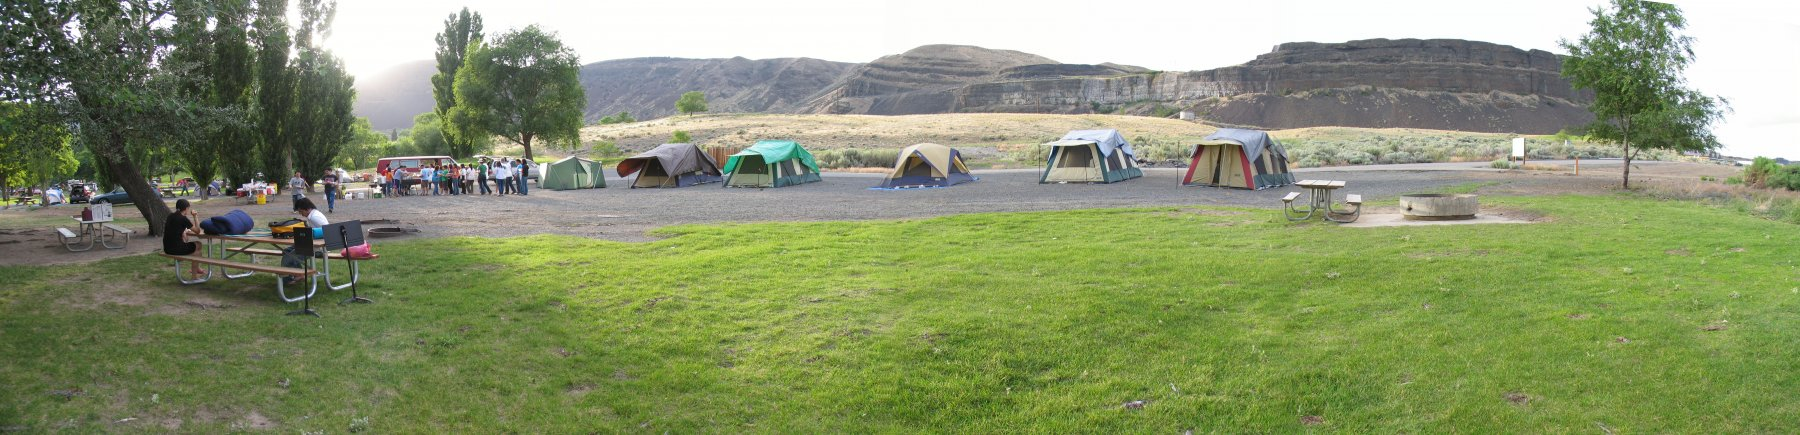 Camping-2005-Site